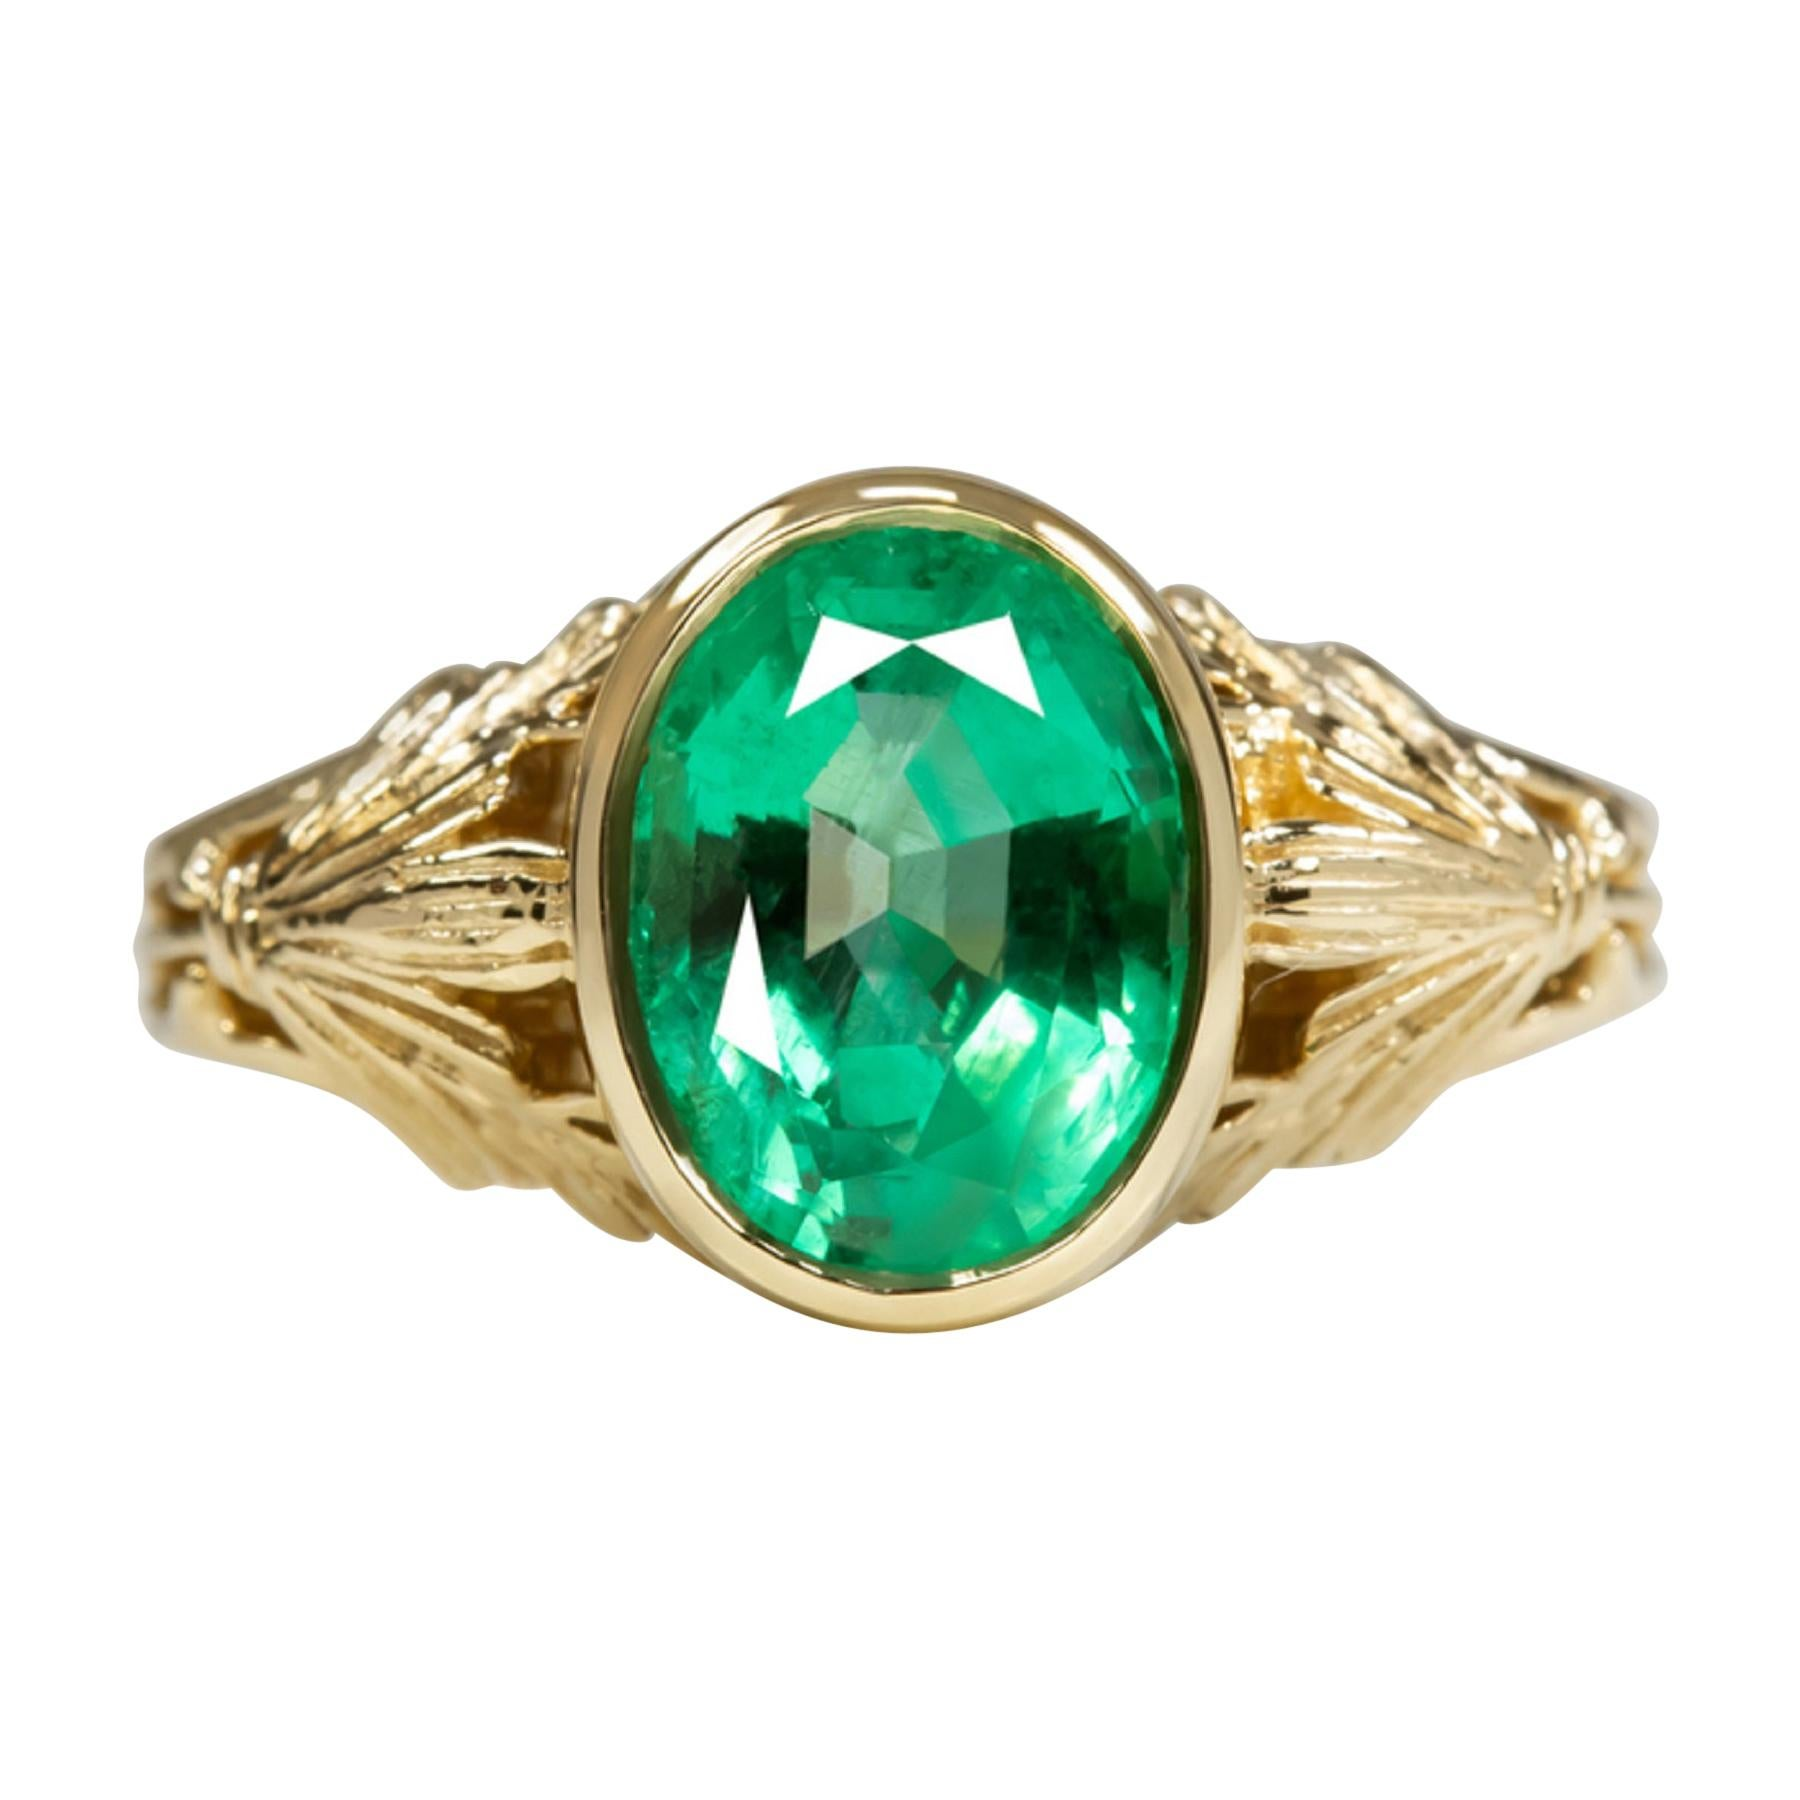 2.50 Carat Colombian Oval Emerald Solitaire Ring